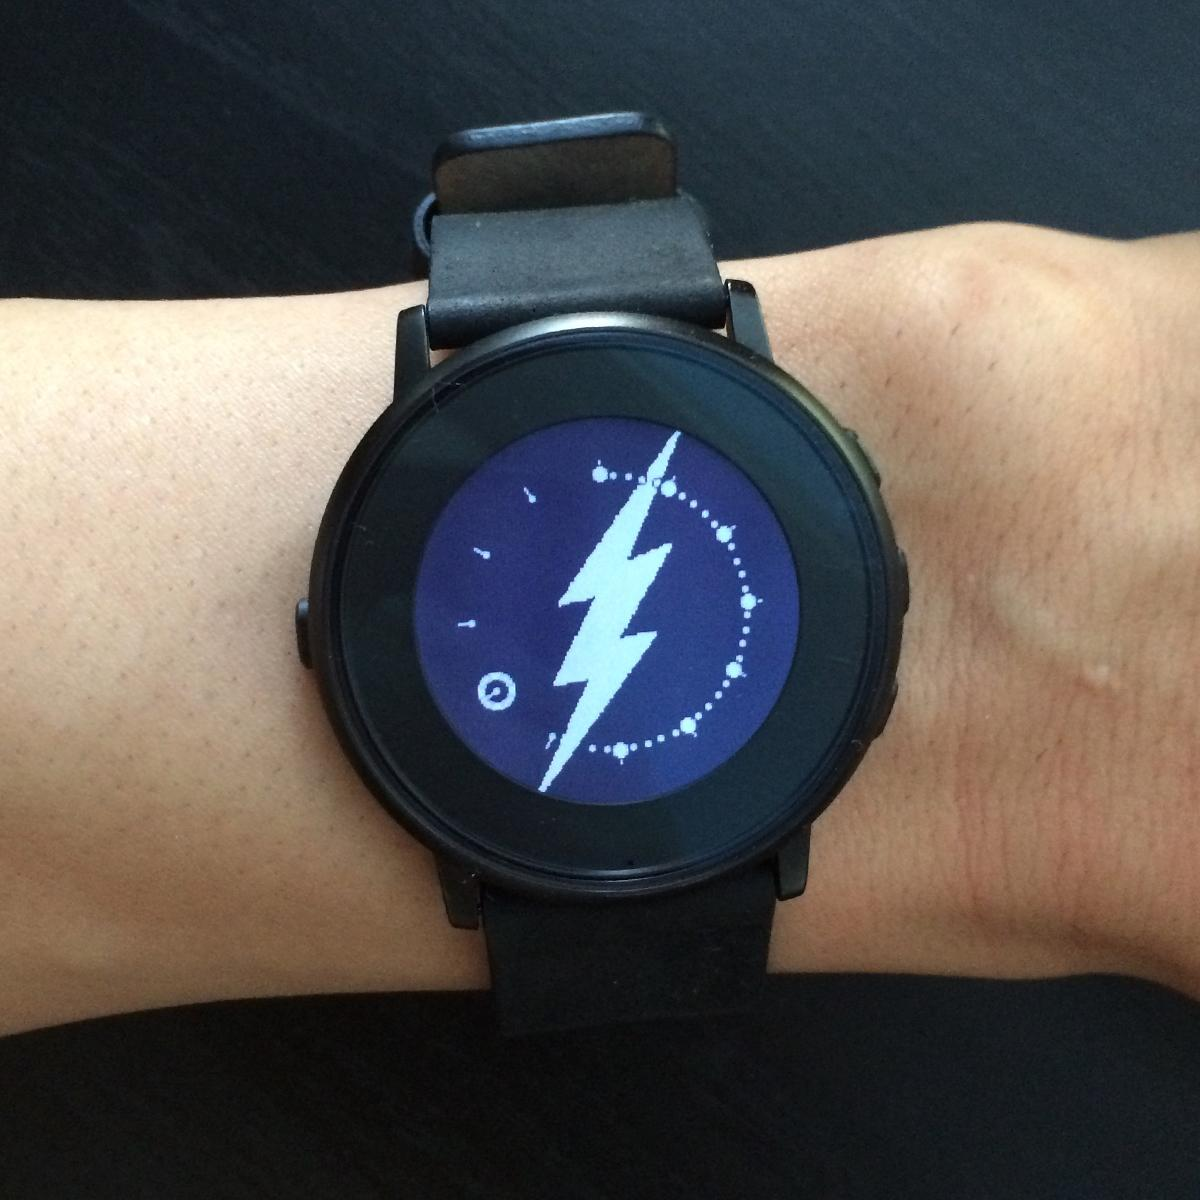 Pebble watch faces: One Day - One Hero superhero watch face